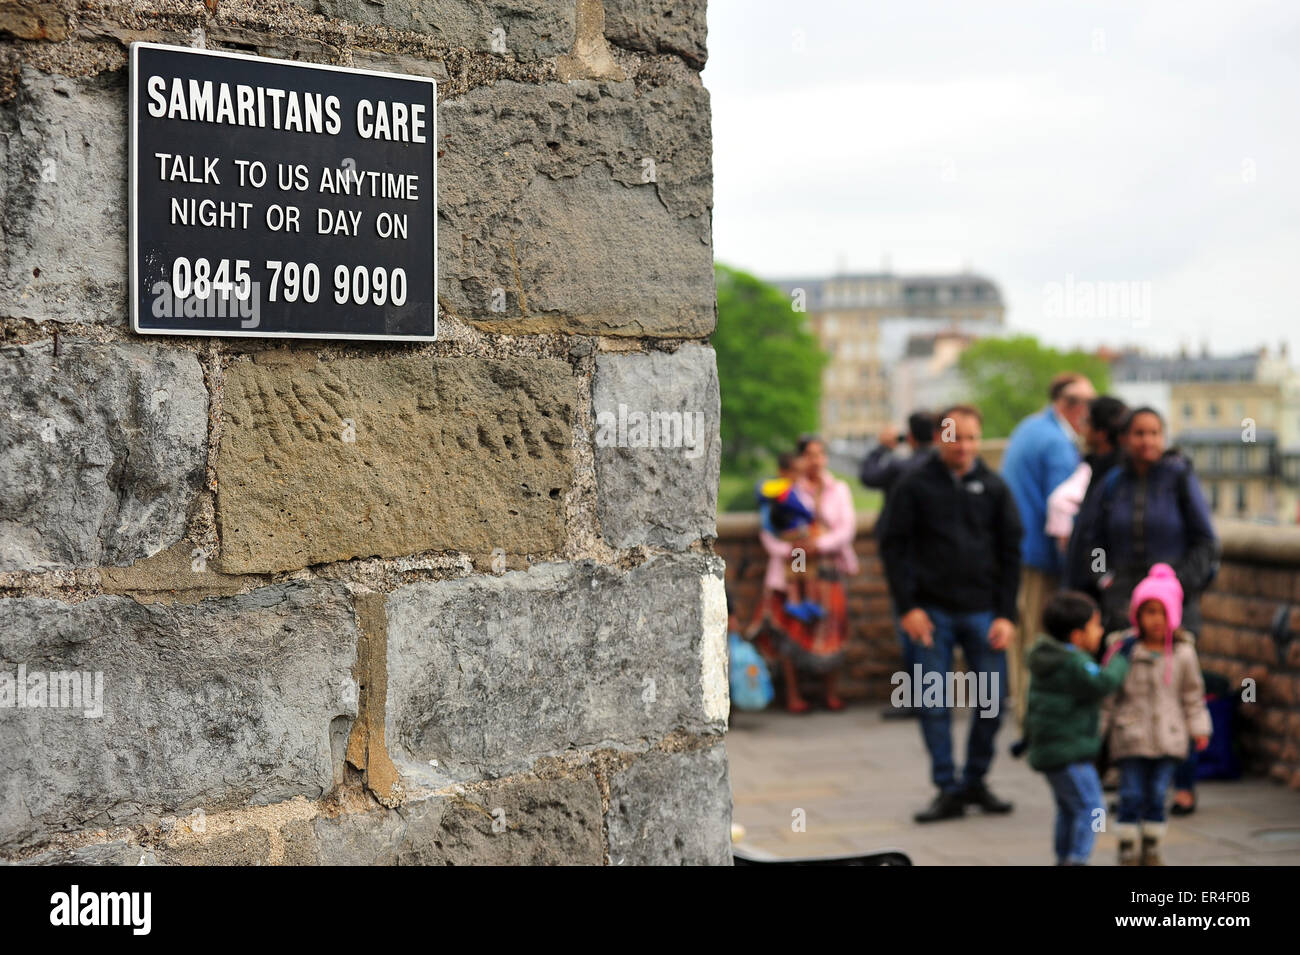 A Samaritans sign with a suicide helpline phone number on the edge of the Clifton Suspension Bridge in Bristol. Stock Photo